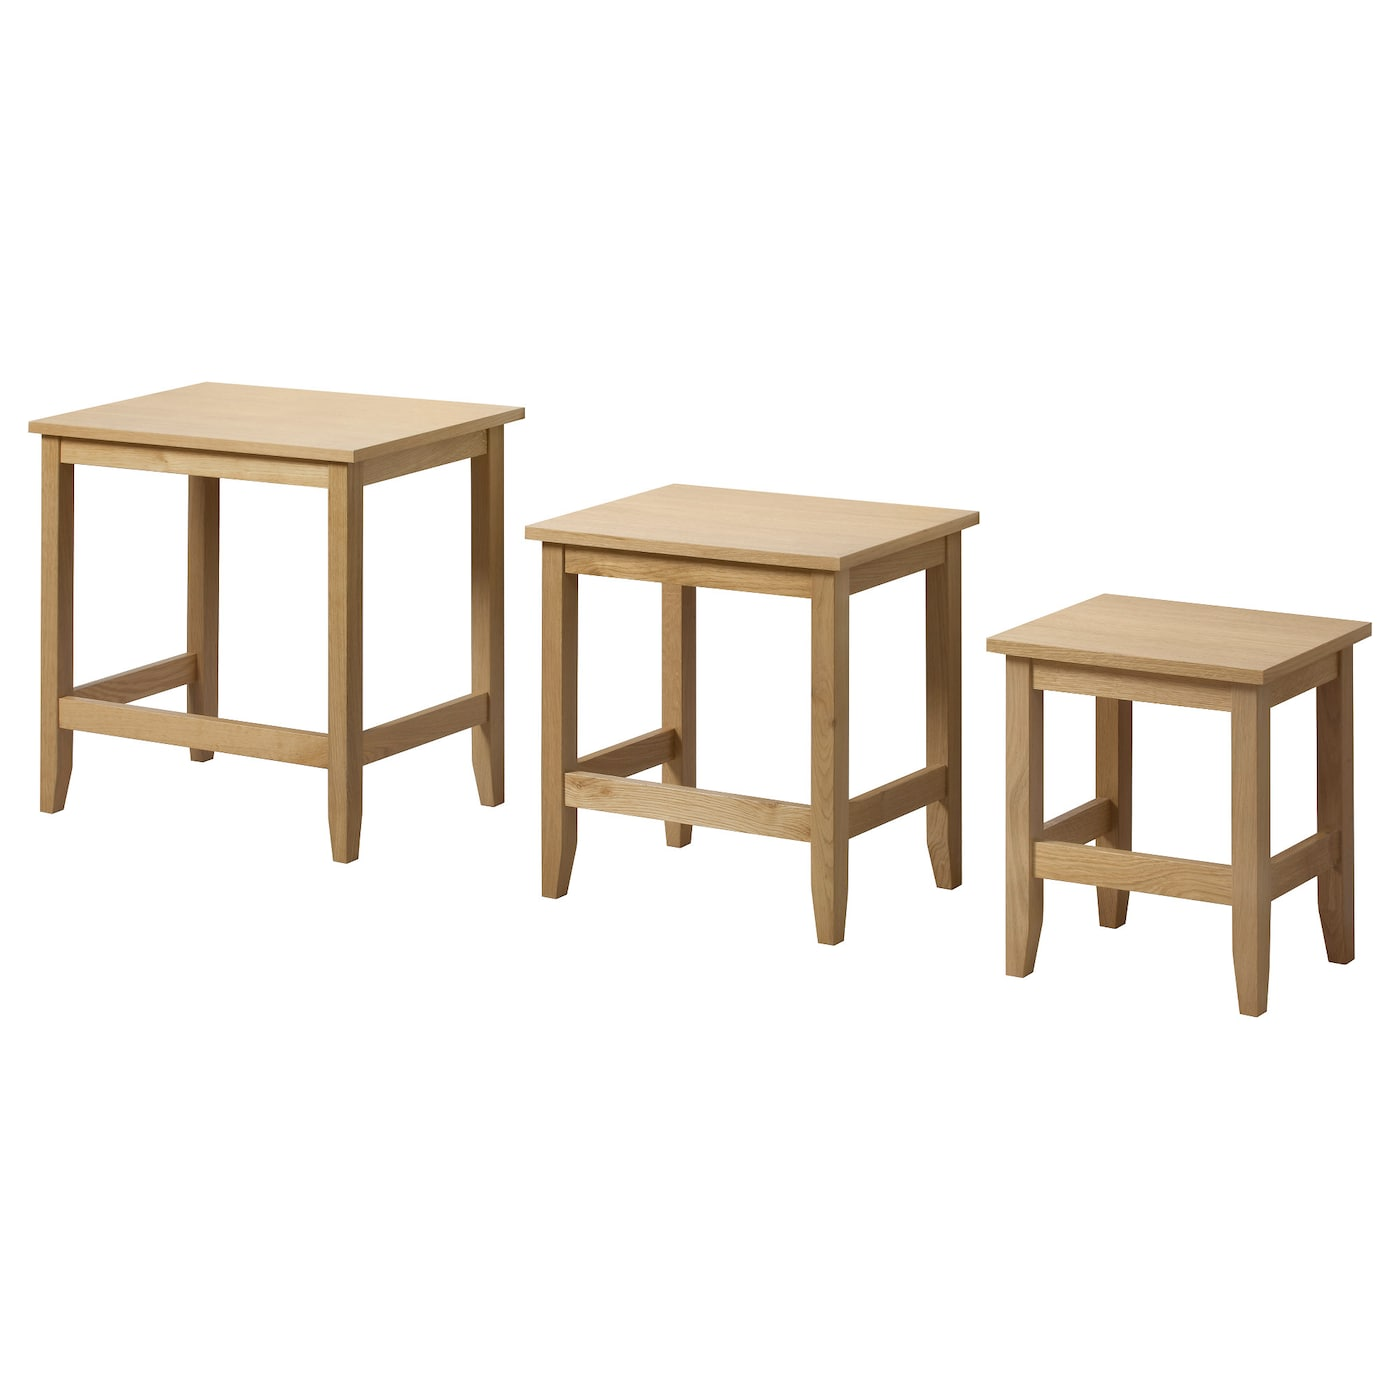 Occasional tables tray storage window tables ikea ikea skoghall nest of tables set of 3 can be pushed together to save space geotapseo Choice Image